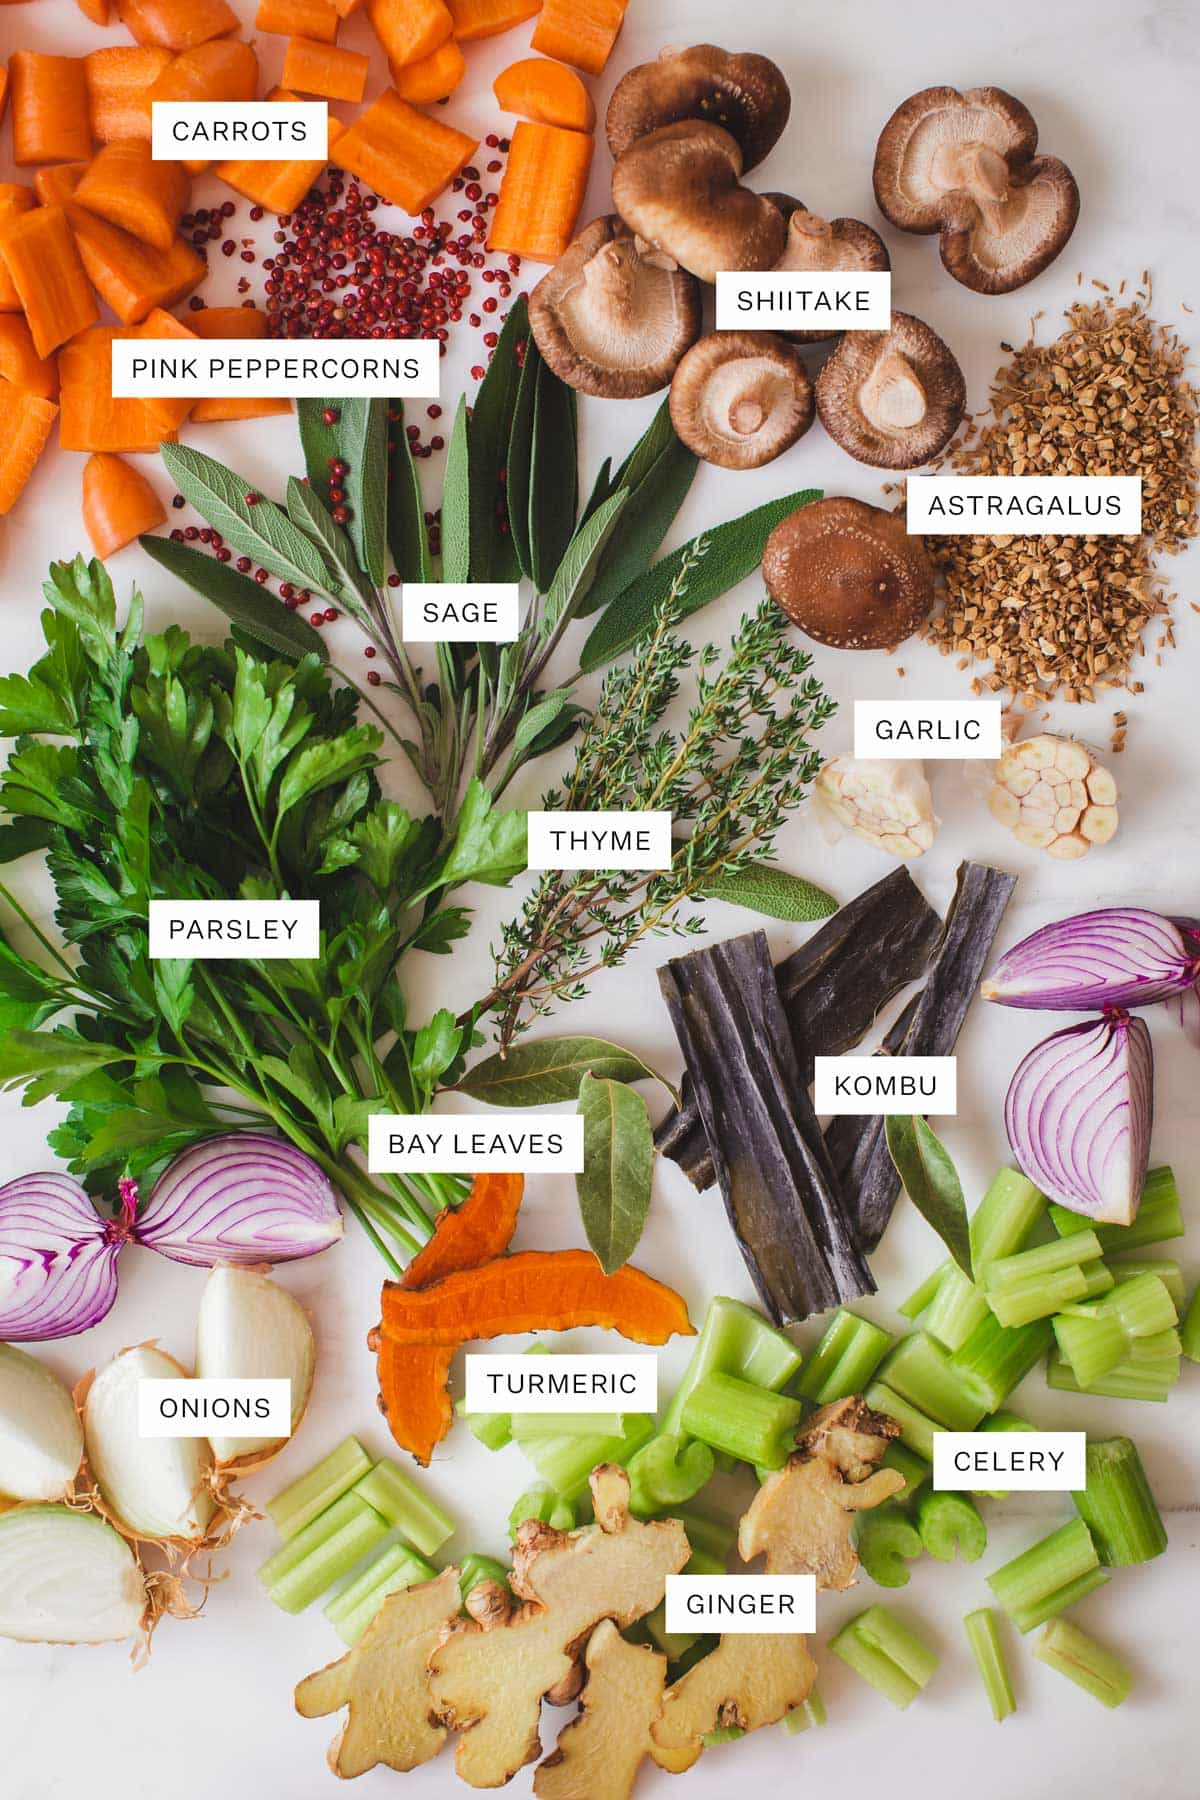 Flat lay of ingredients used to make a medicinal vegetable broth.